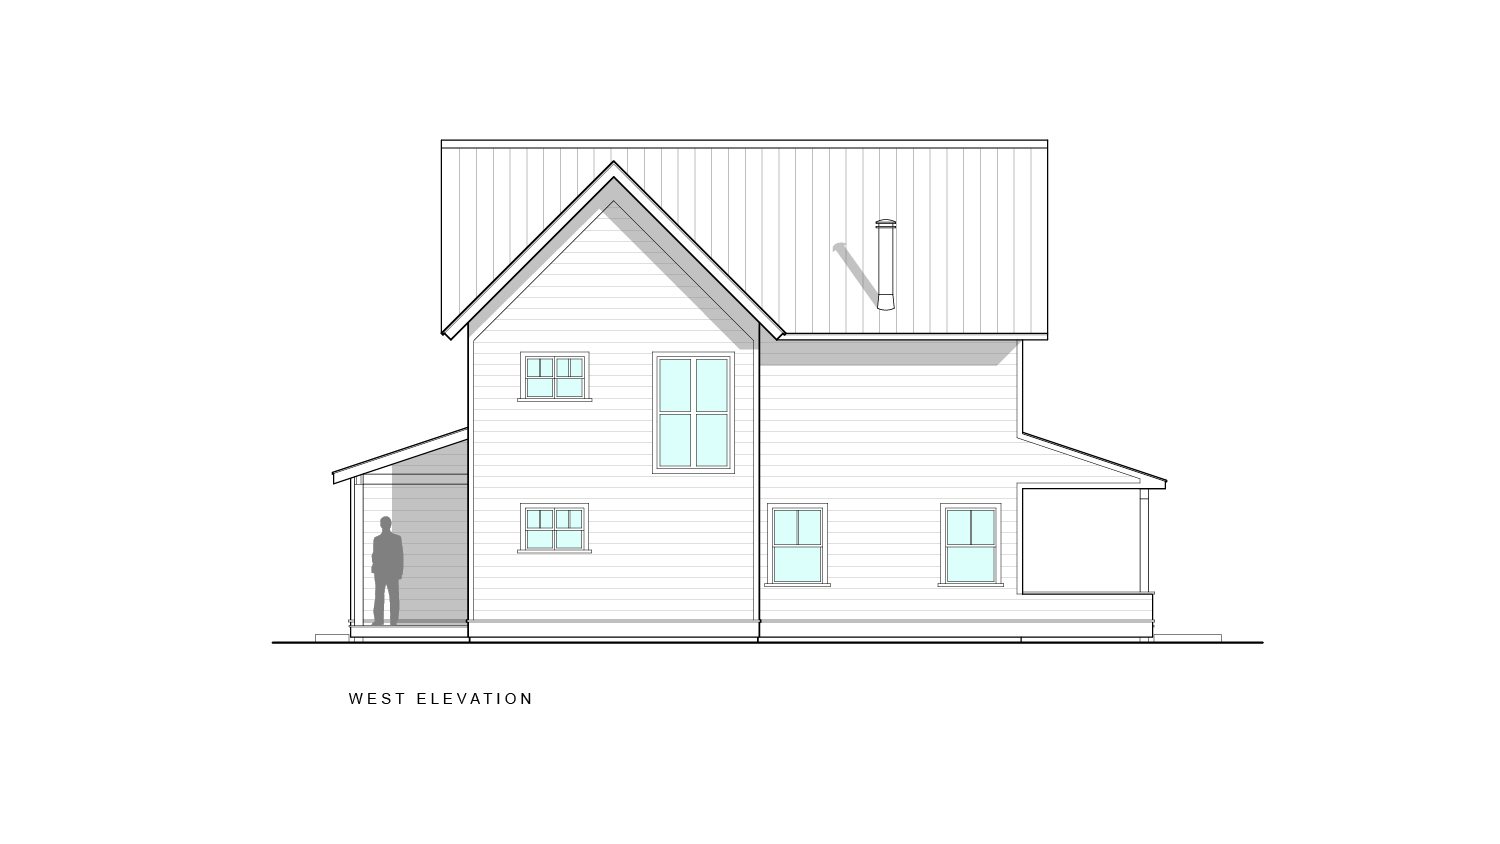 Sawkill Ave West Elevation